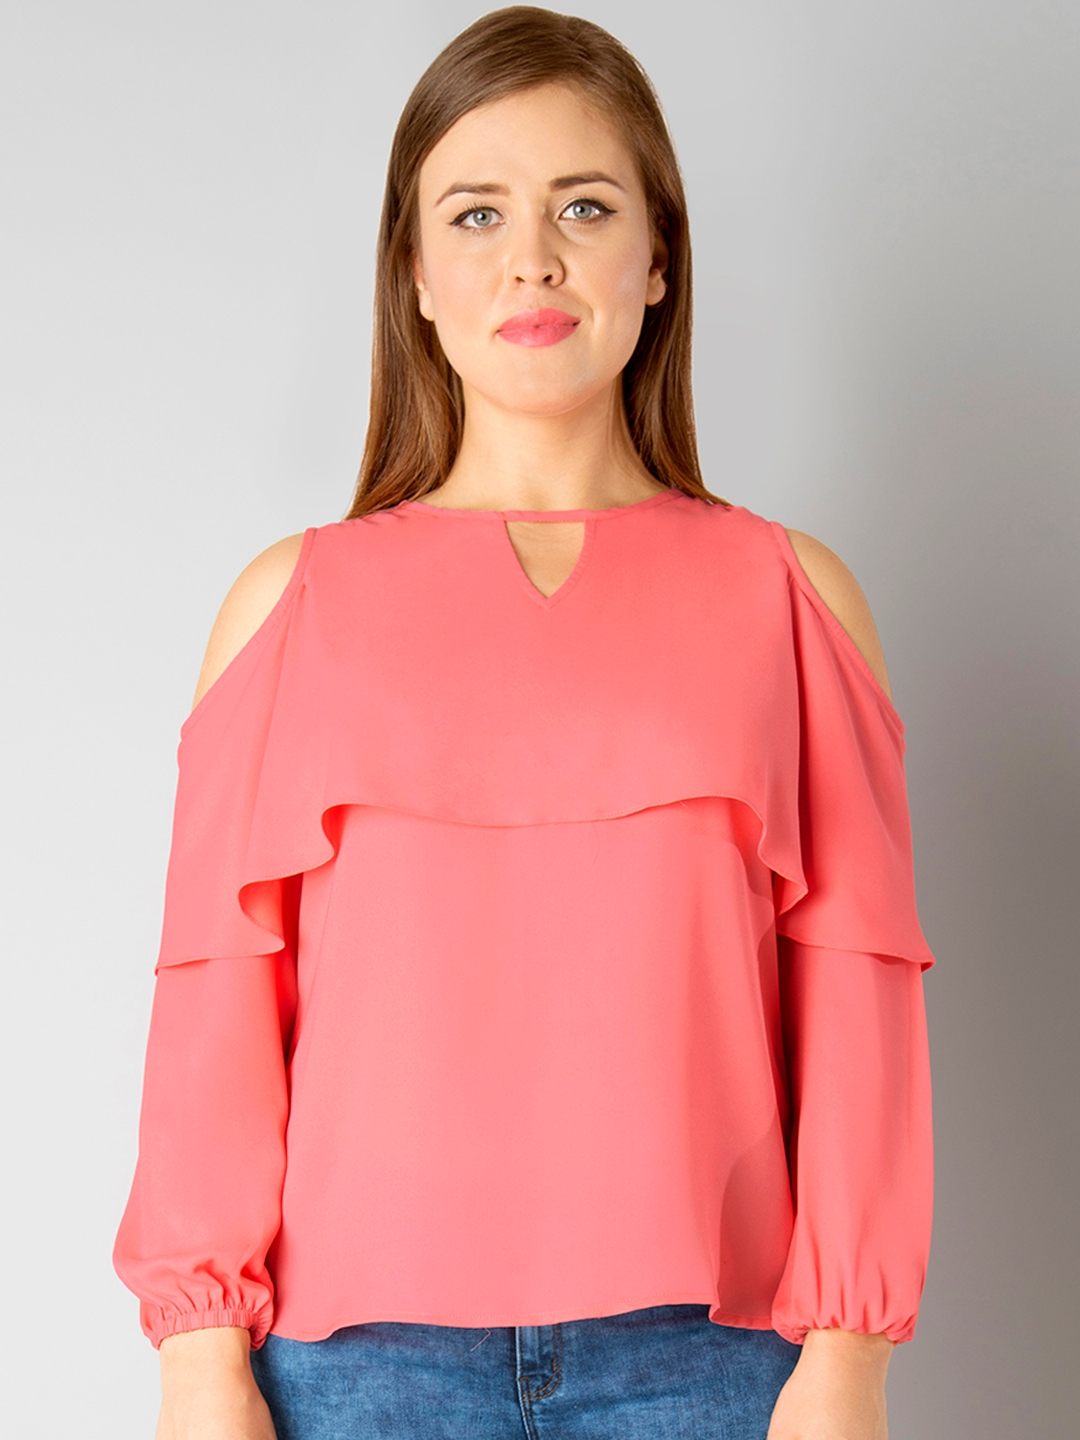 3acf12fc3d3d4 Buy FabAlley Curve Women Coral Pink Cold Shoulder Top - Tops for ...